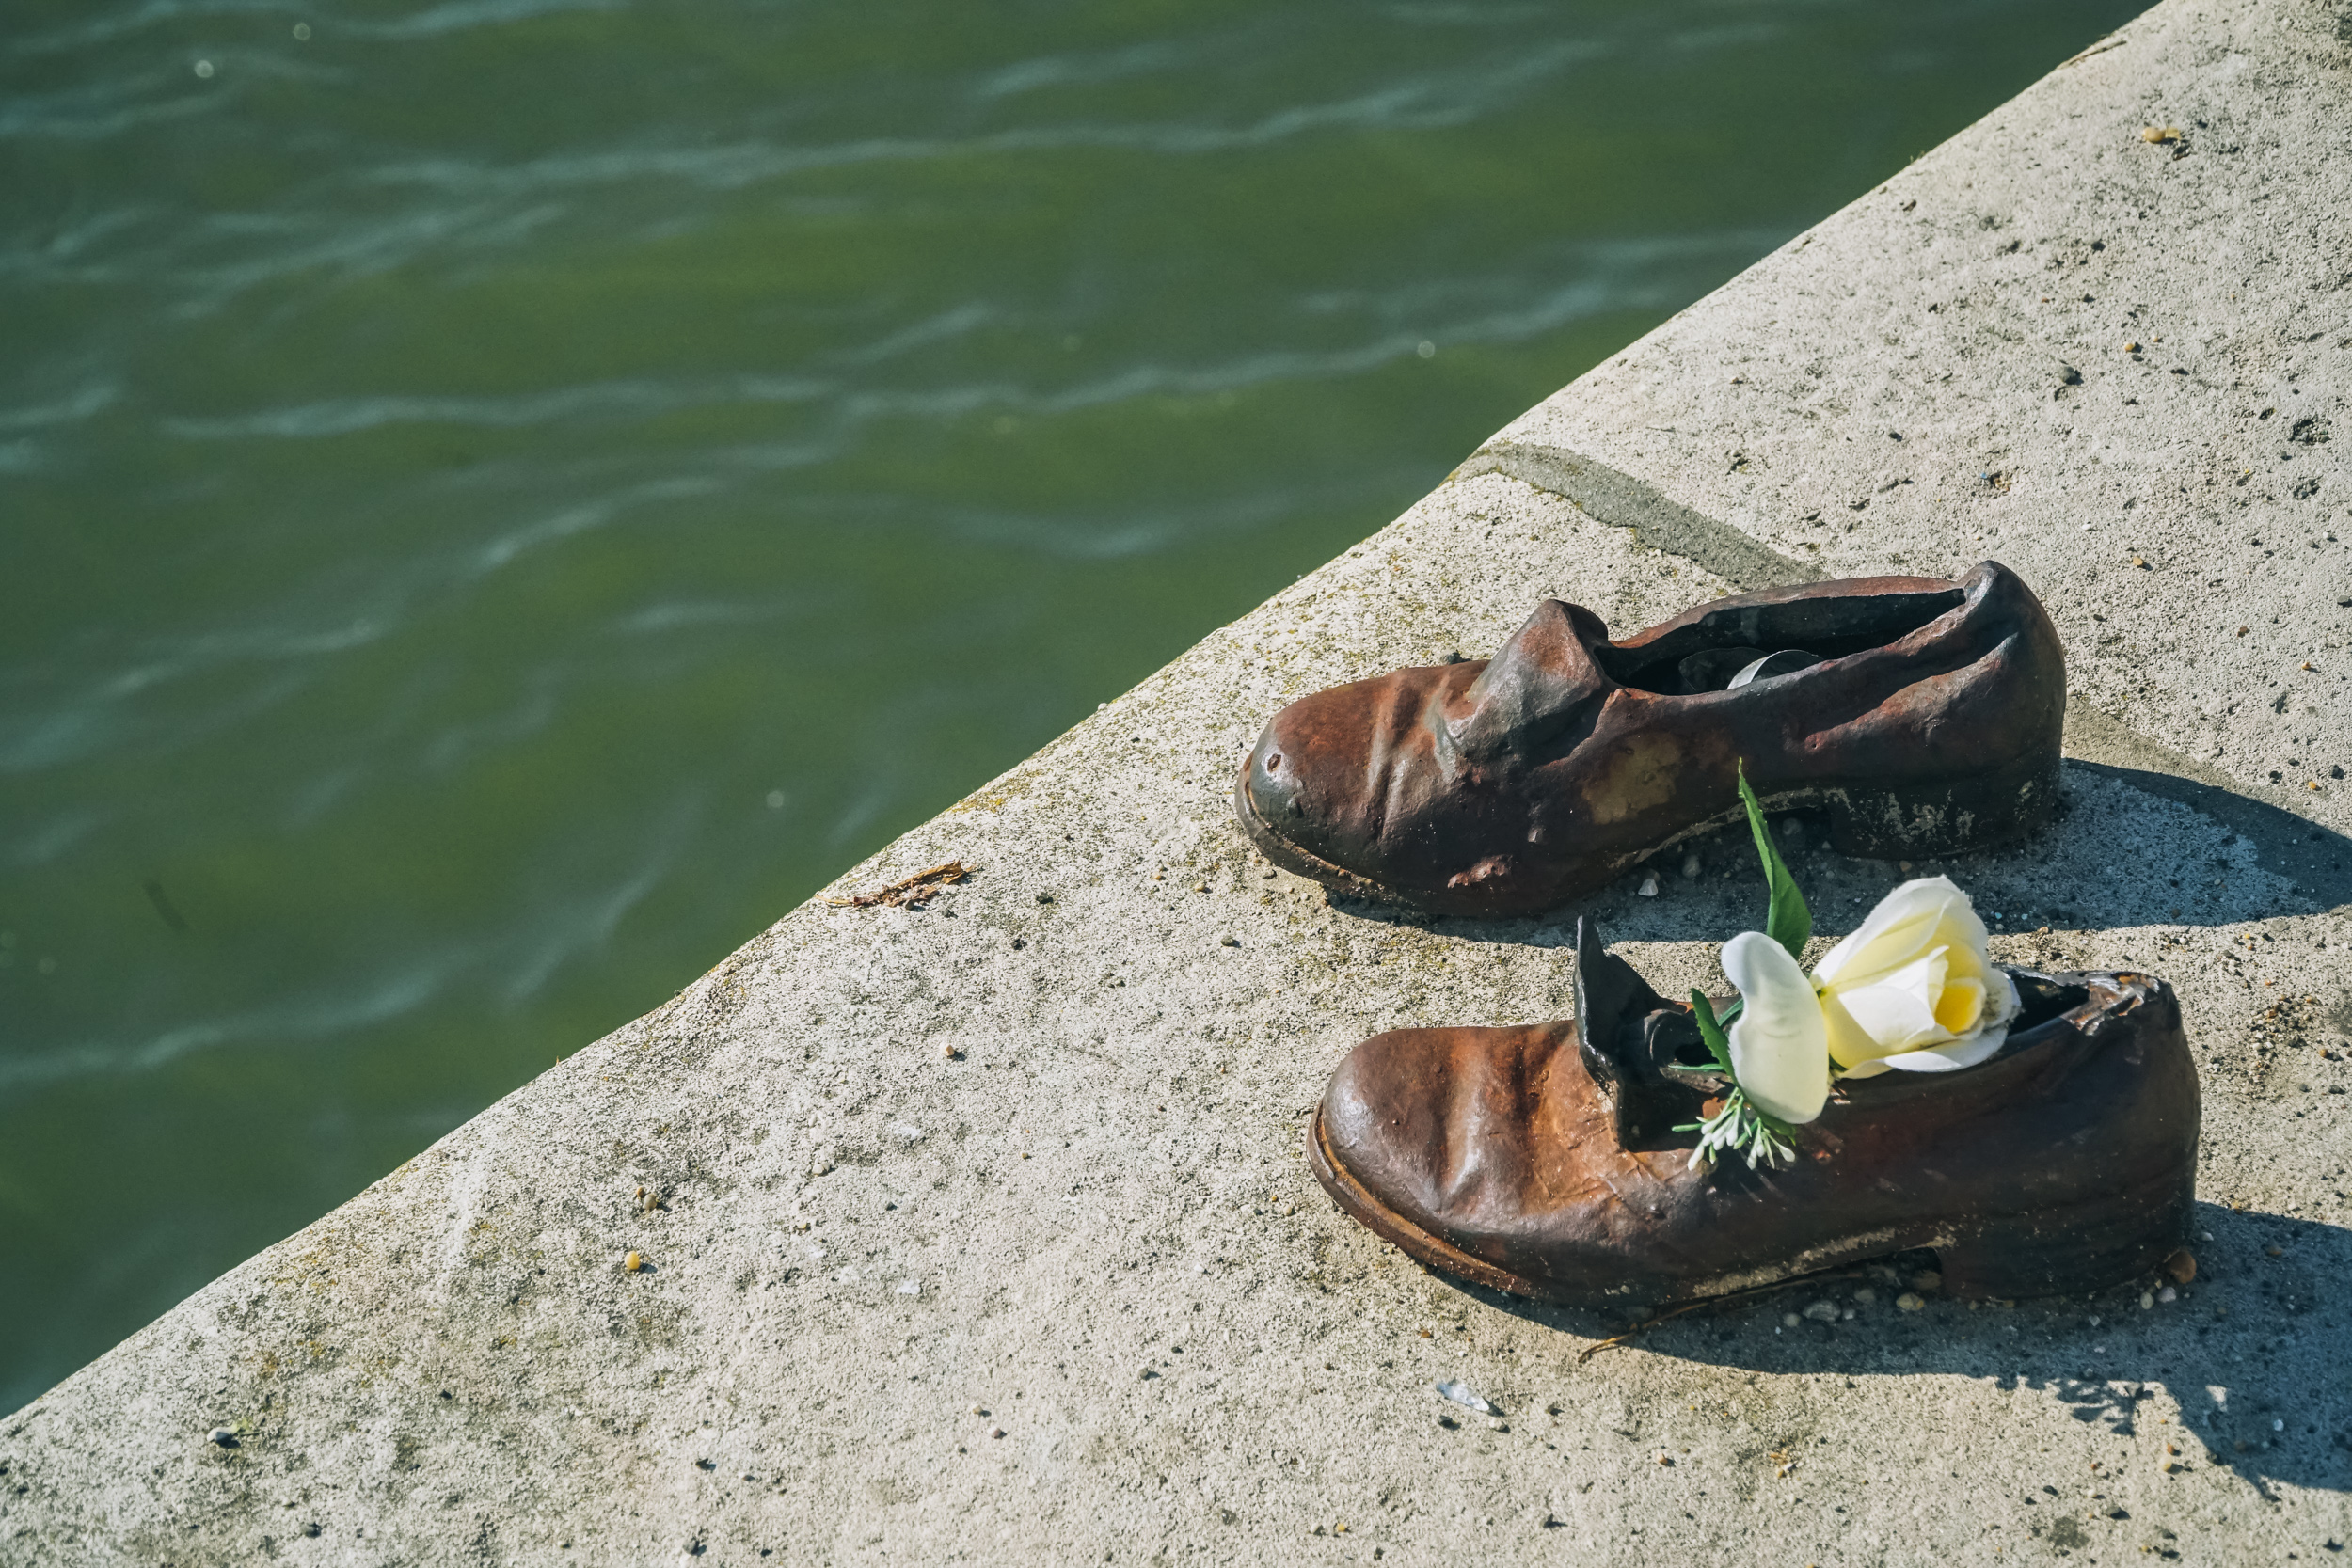 Budapest Shoes on Danube